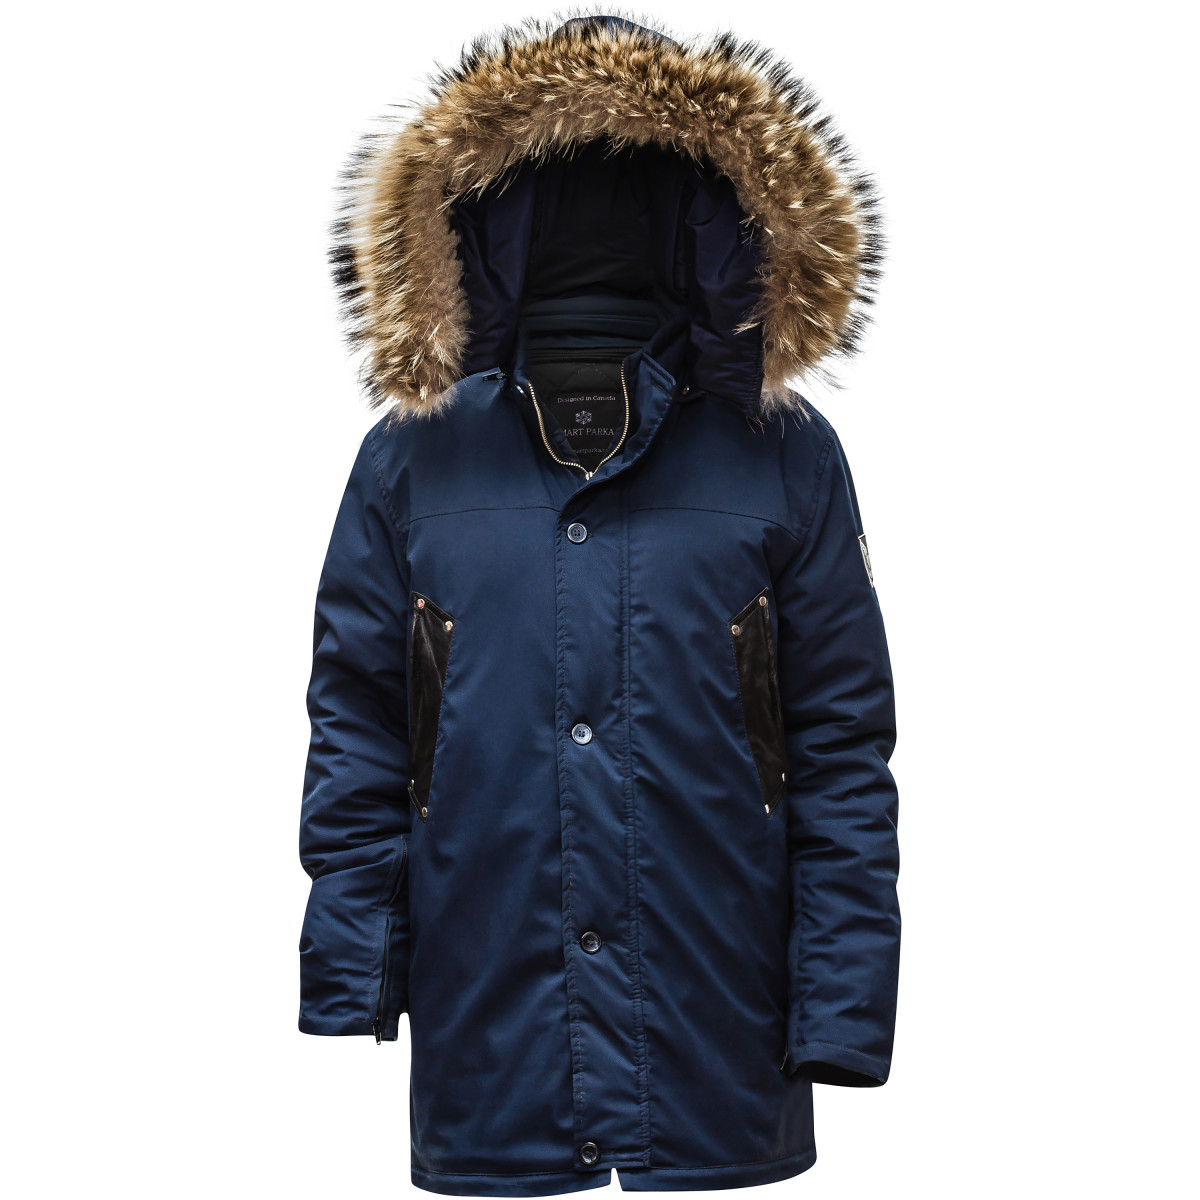 The Smart Parka 'Vogue' style for men. Photo: NorthAware.com